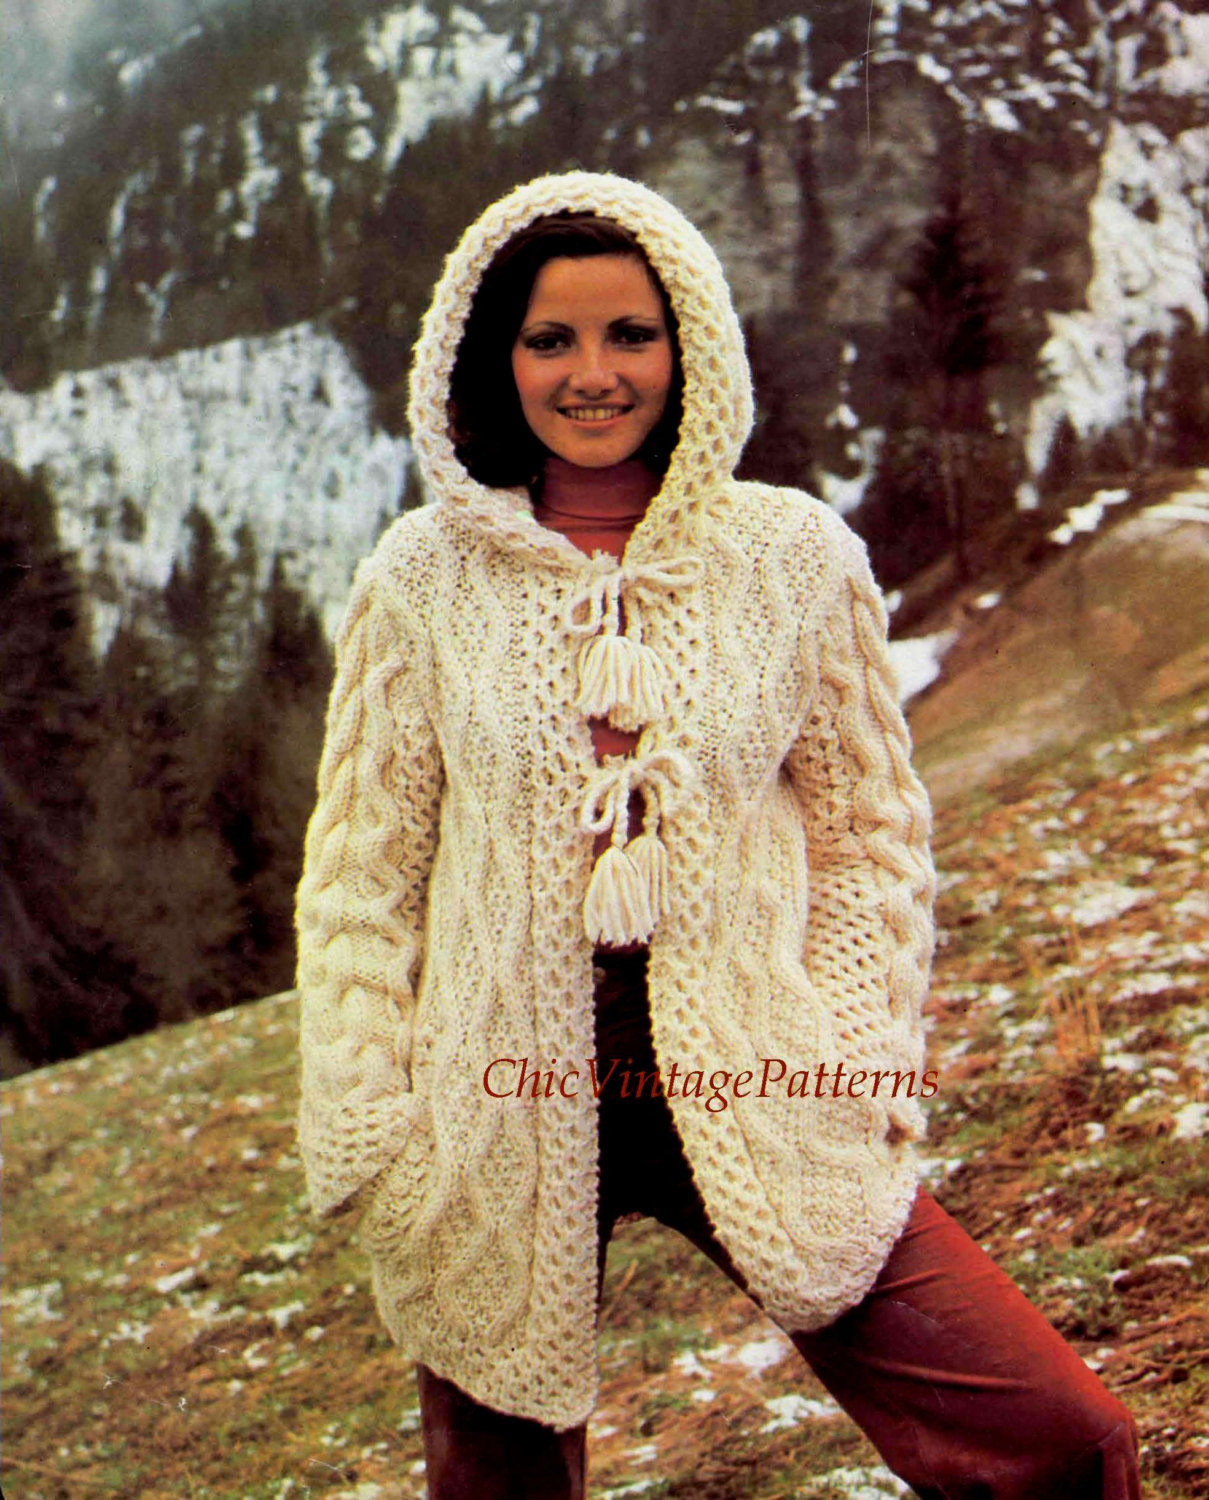 Knitted Jacket Patterns Knitted Jacket Pattern Ladies Aran Hooded Cardigan Stylish Warm And Cosy Long Line Knit Instant Download Hooded Jacket